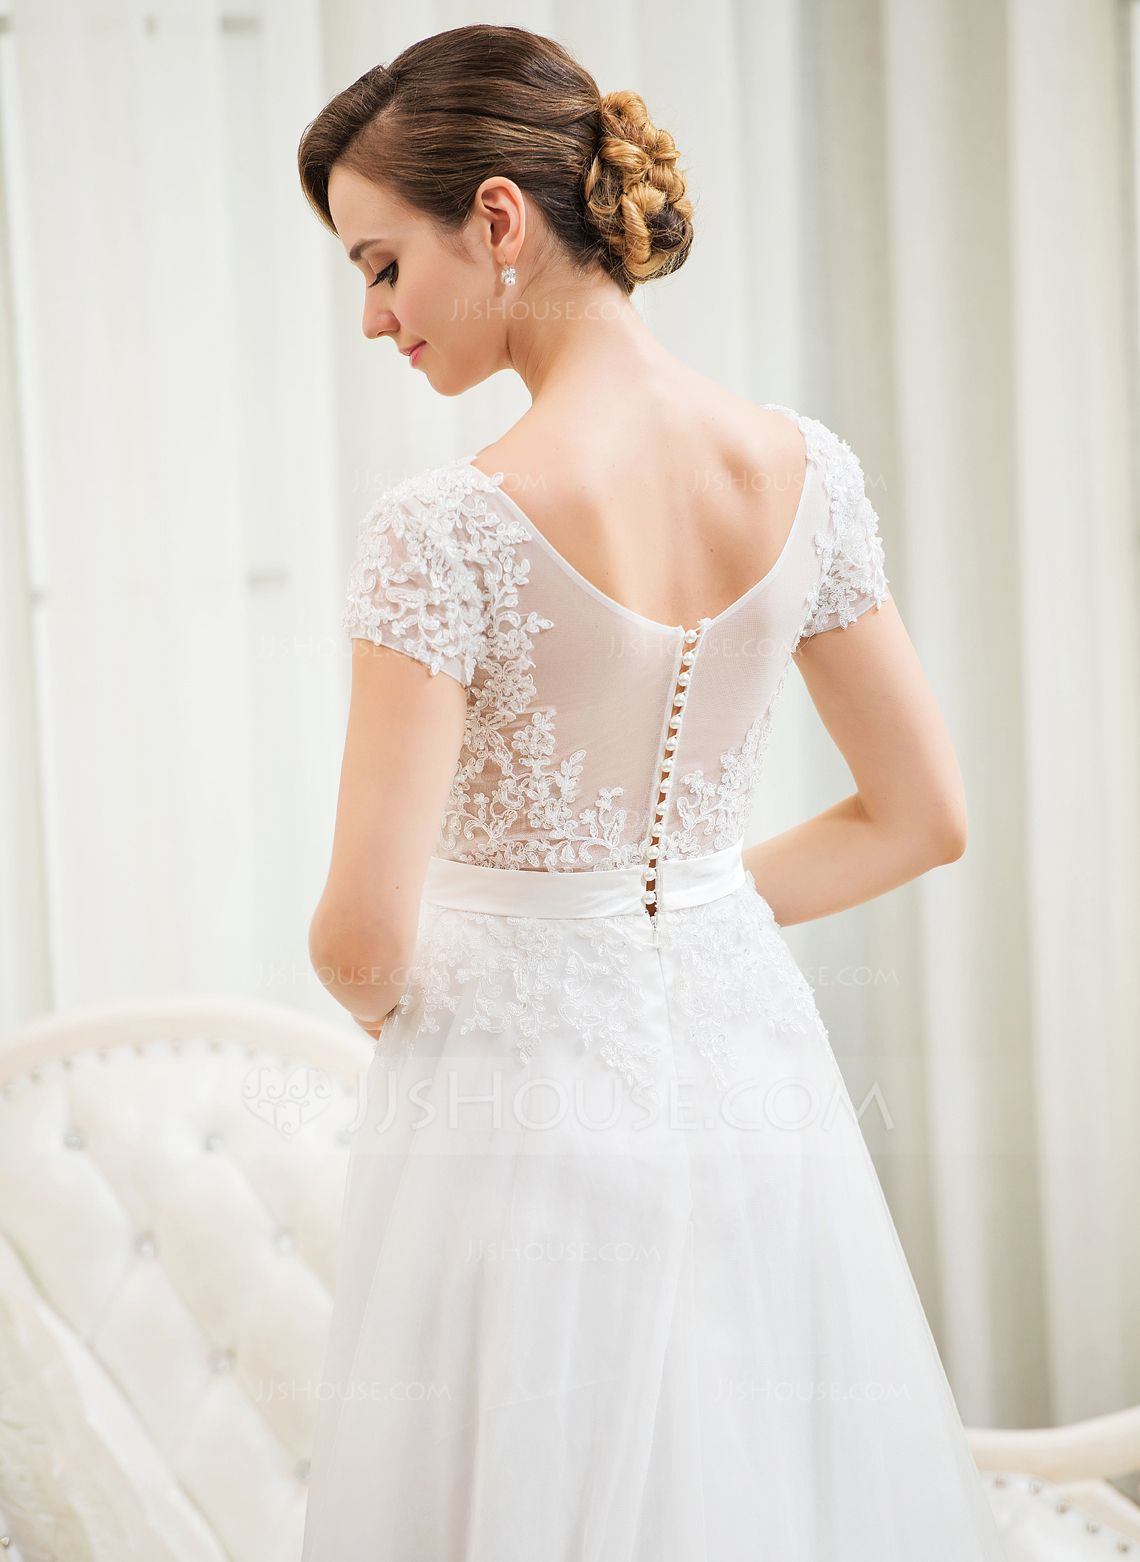 Us 216 00 A Line Princess Scoop Neck Sweep Train Tulle Lace Wedding Dress With Beading Sequins Jj S House Elegant Long Sleeve Wedding Dresses Ball Gowns Wedding Wedding Dress Long Sleeve [ 1562 x 1140 Pixel ]